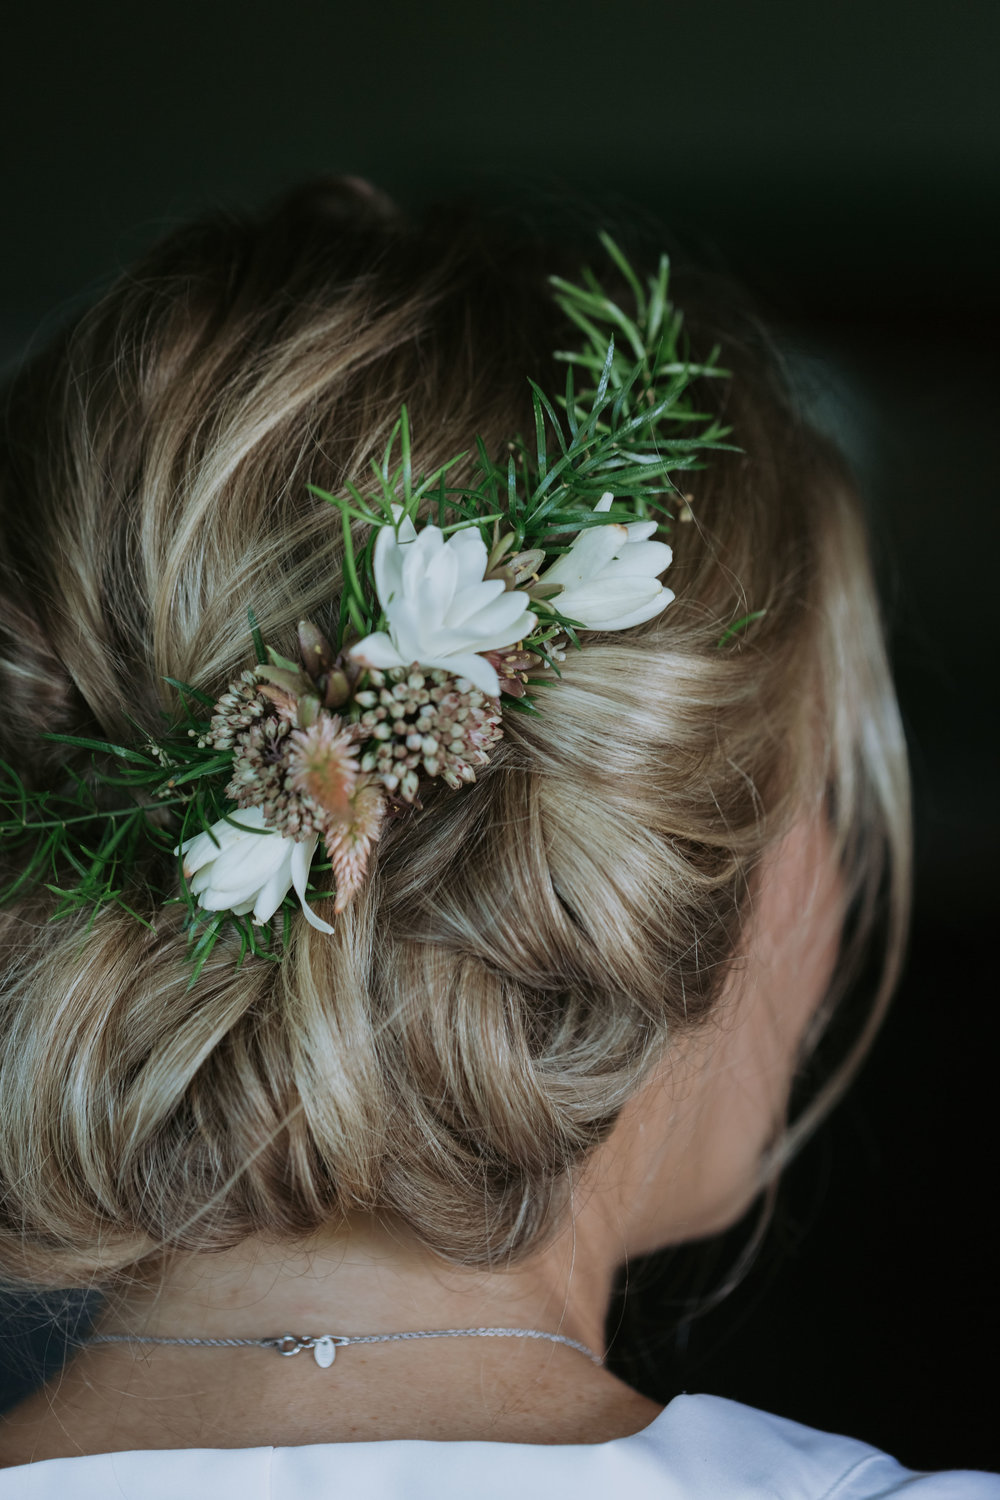 Brides flower crown photo. Wedding details.